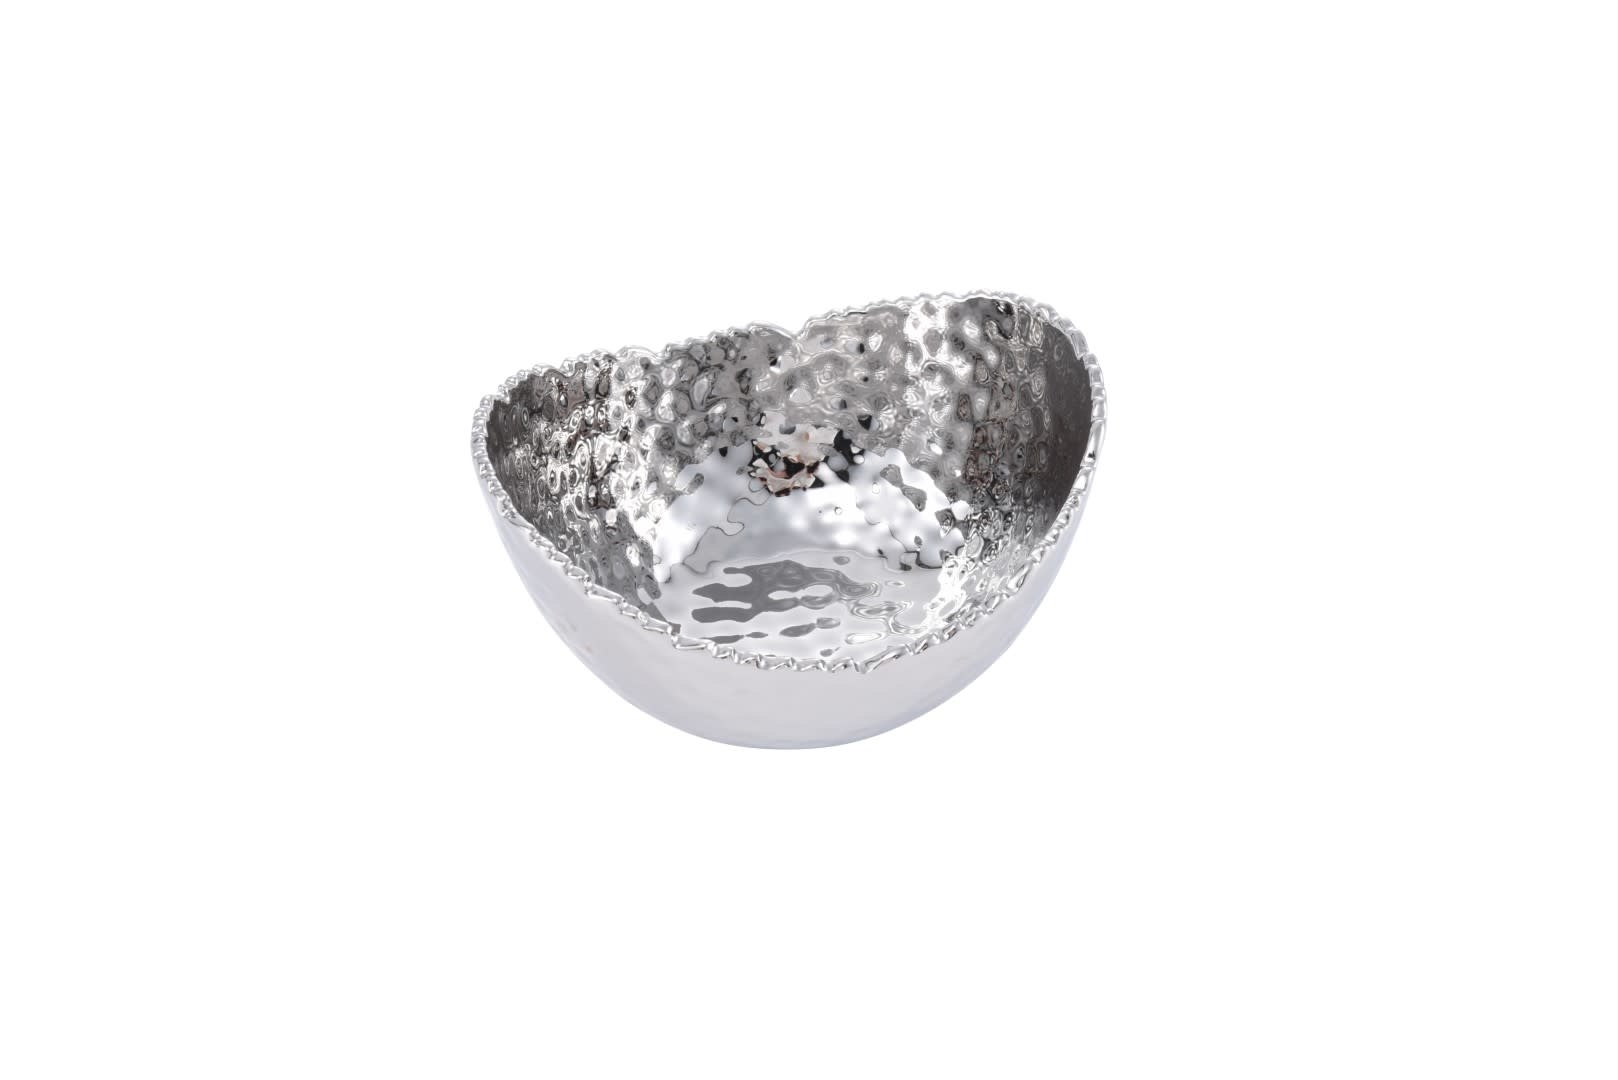 Extra Small oval bowl